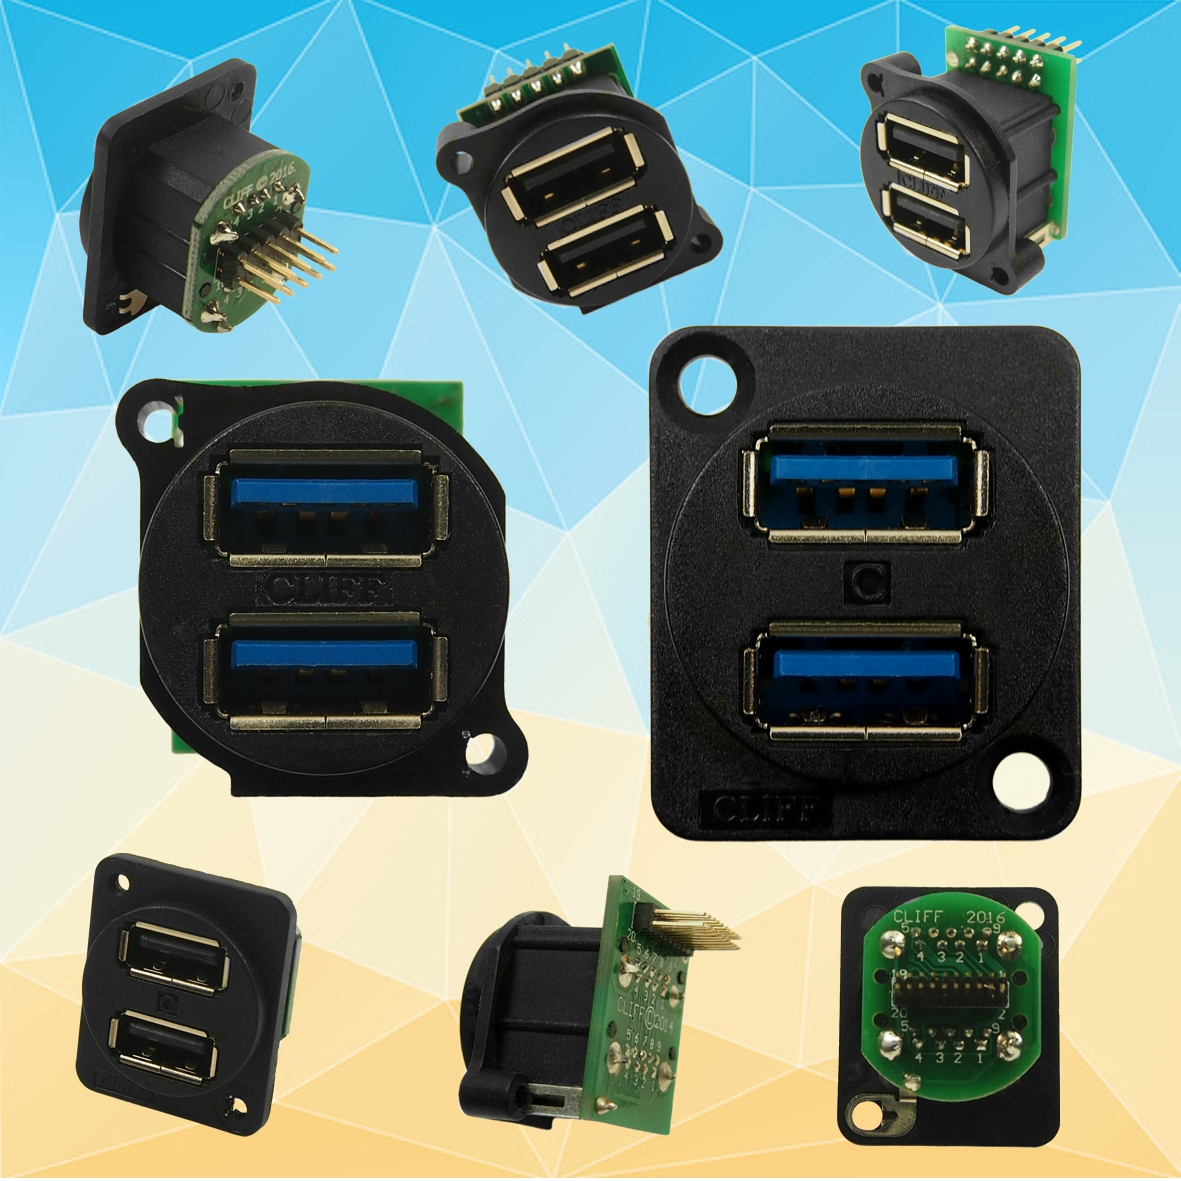 Cliff Electronic Components News Dual Usb2 And Usb3 Sockets In Wiring Xlr Audio Musical Theatre Electronics Introduces Usb 2 An Shell